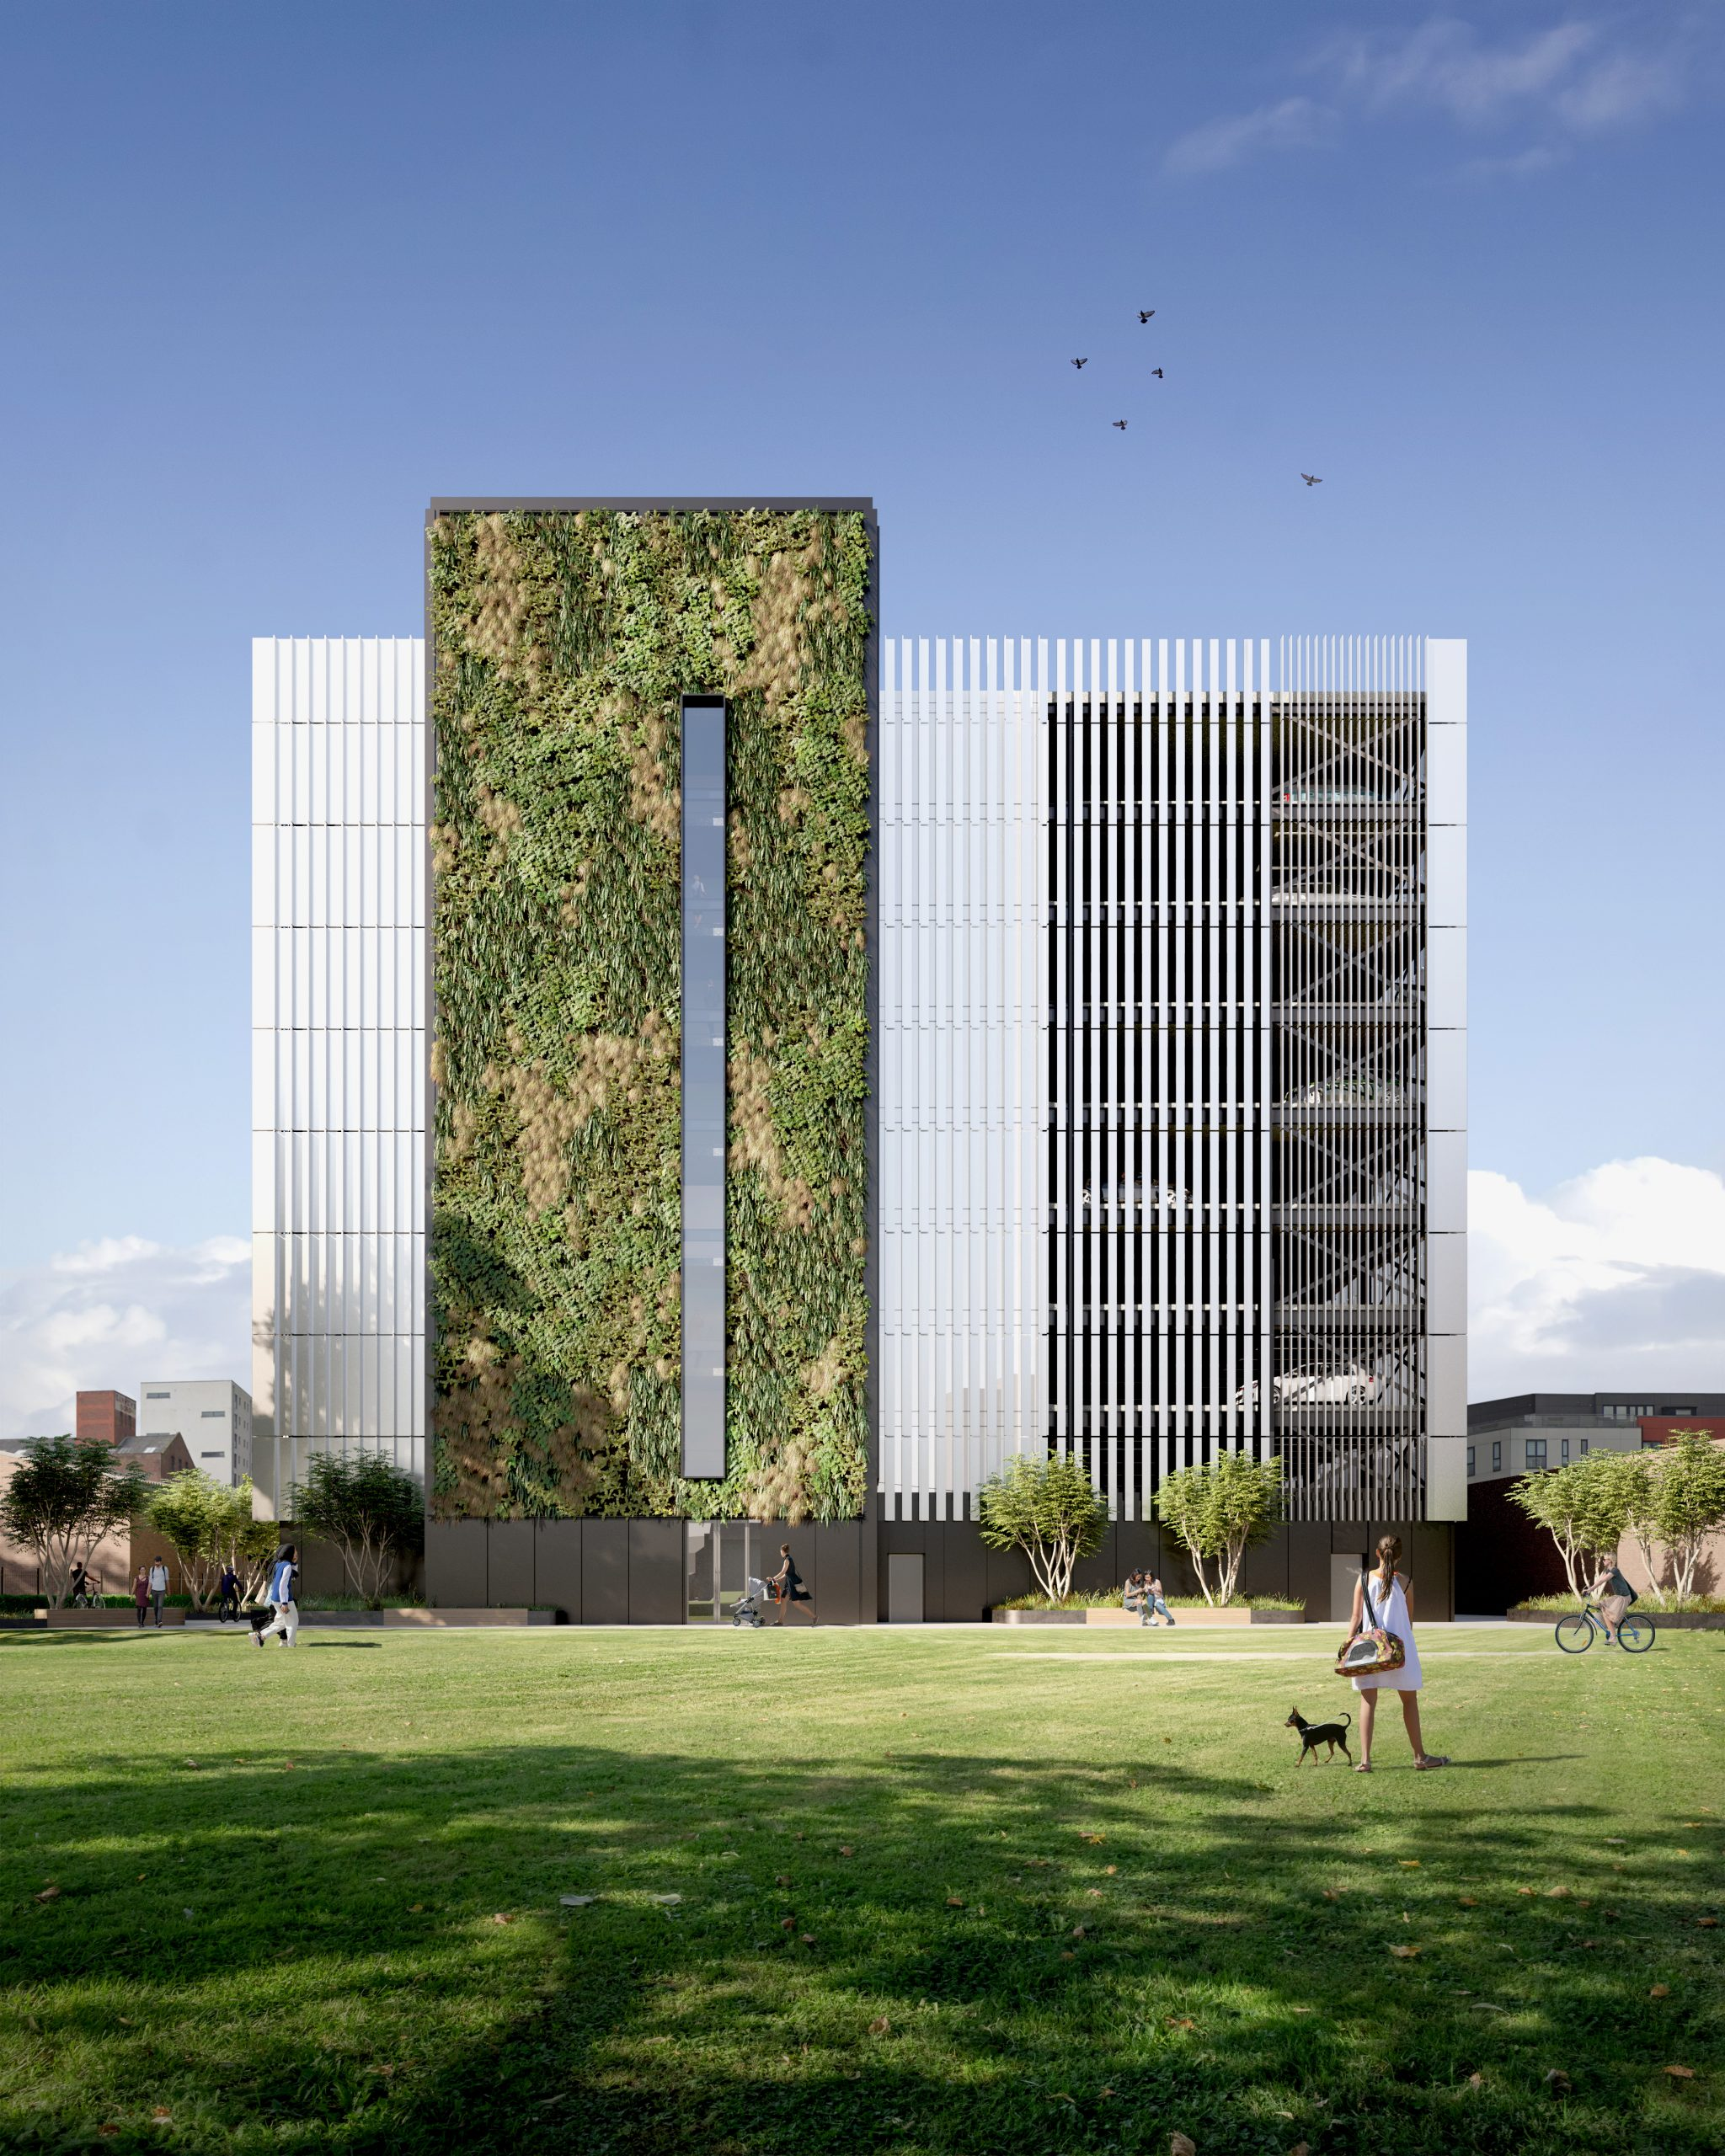 Plans lodged for Ancoats Mobility Hub